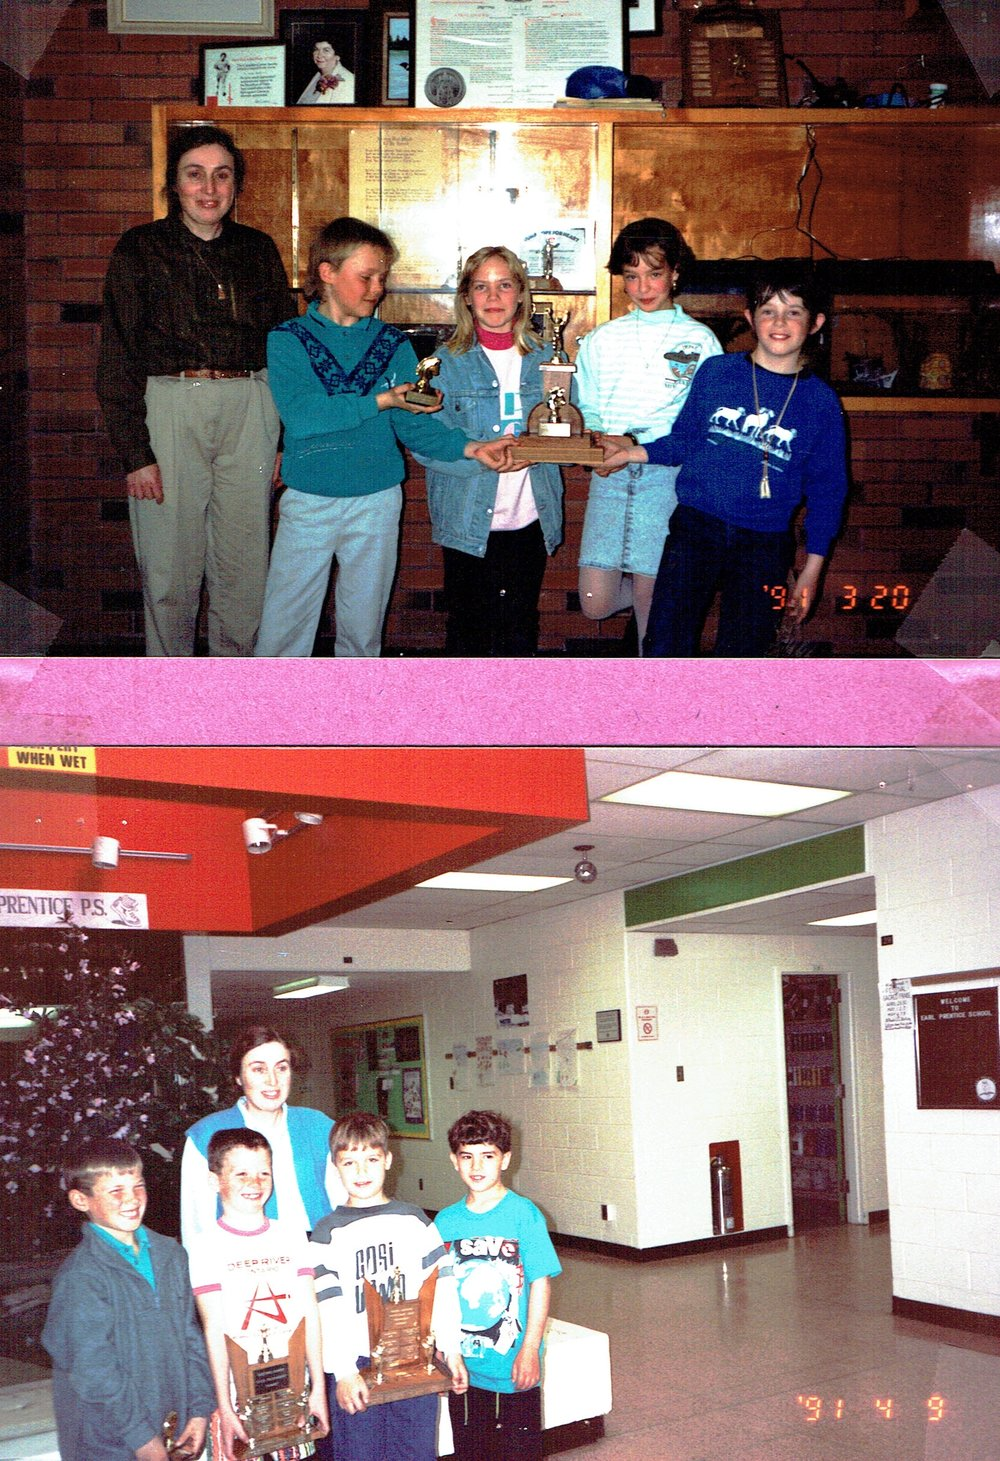 Earl Prenitce Chess Club, 1991